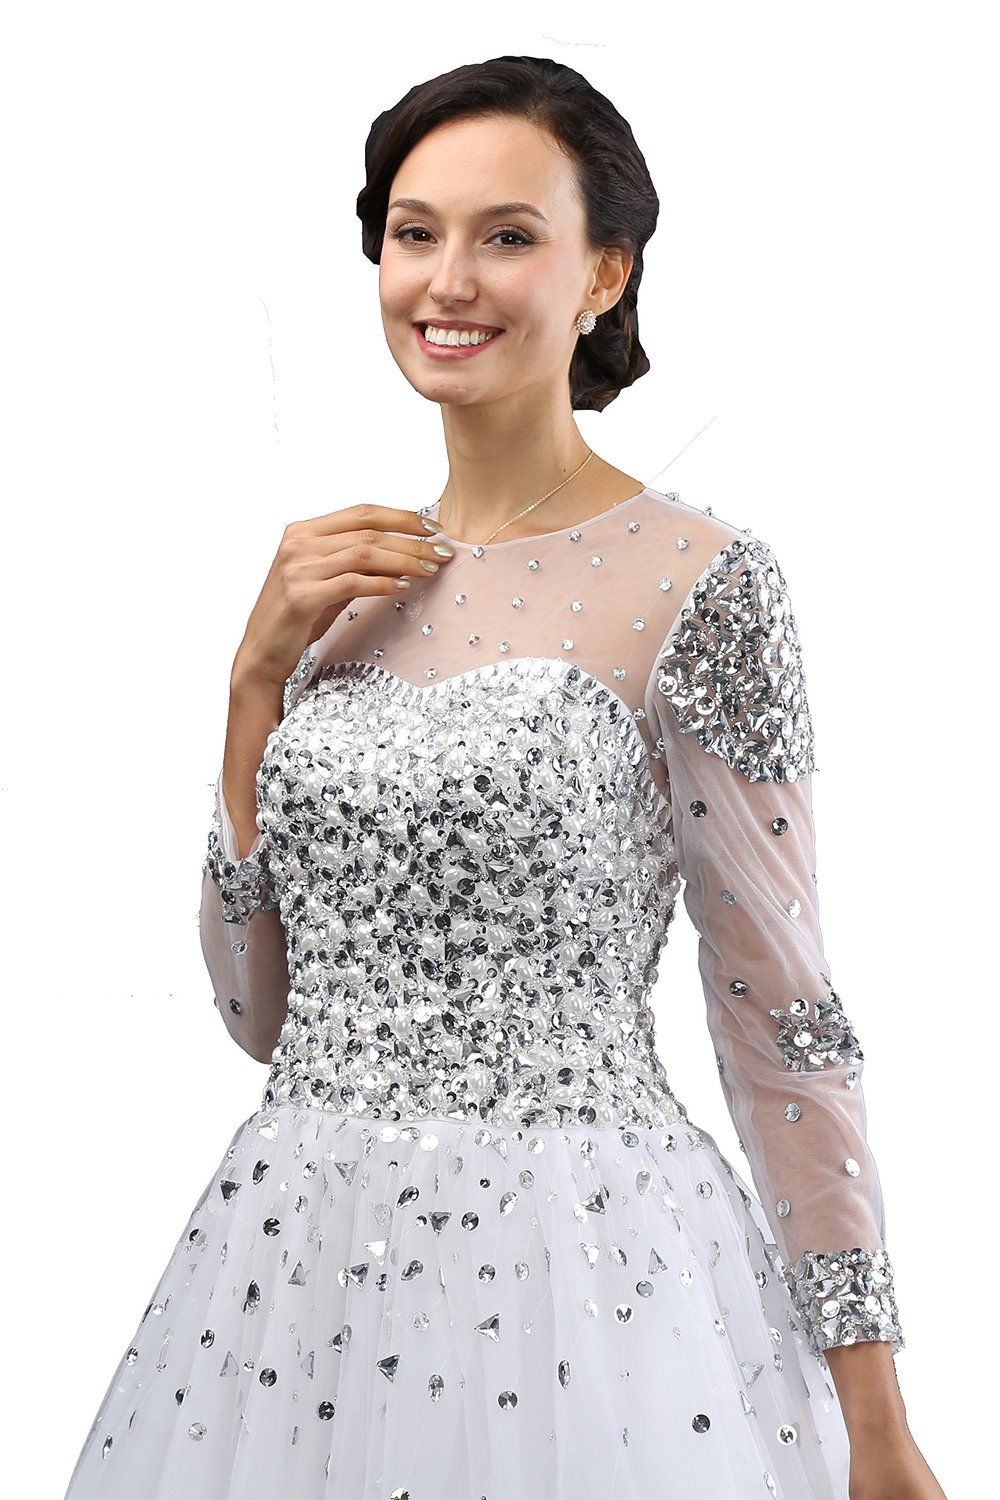 amazon com wedding dresses L ivresse Women s Long Sleeves Crystals Tulle Ball Gowns Wedding Dress Amazon com